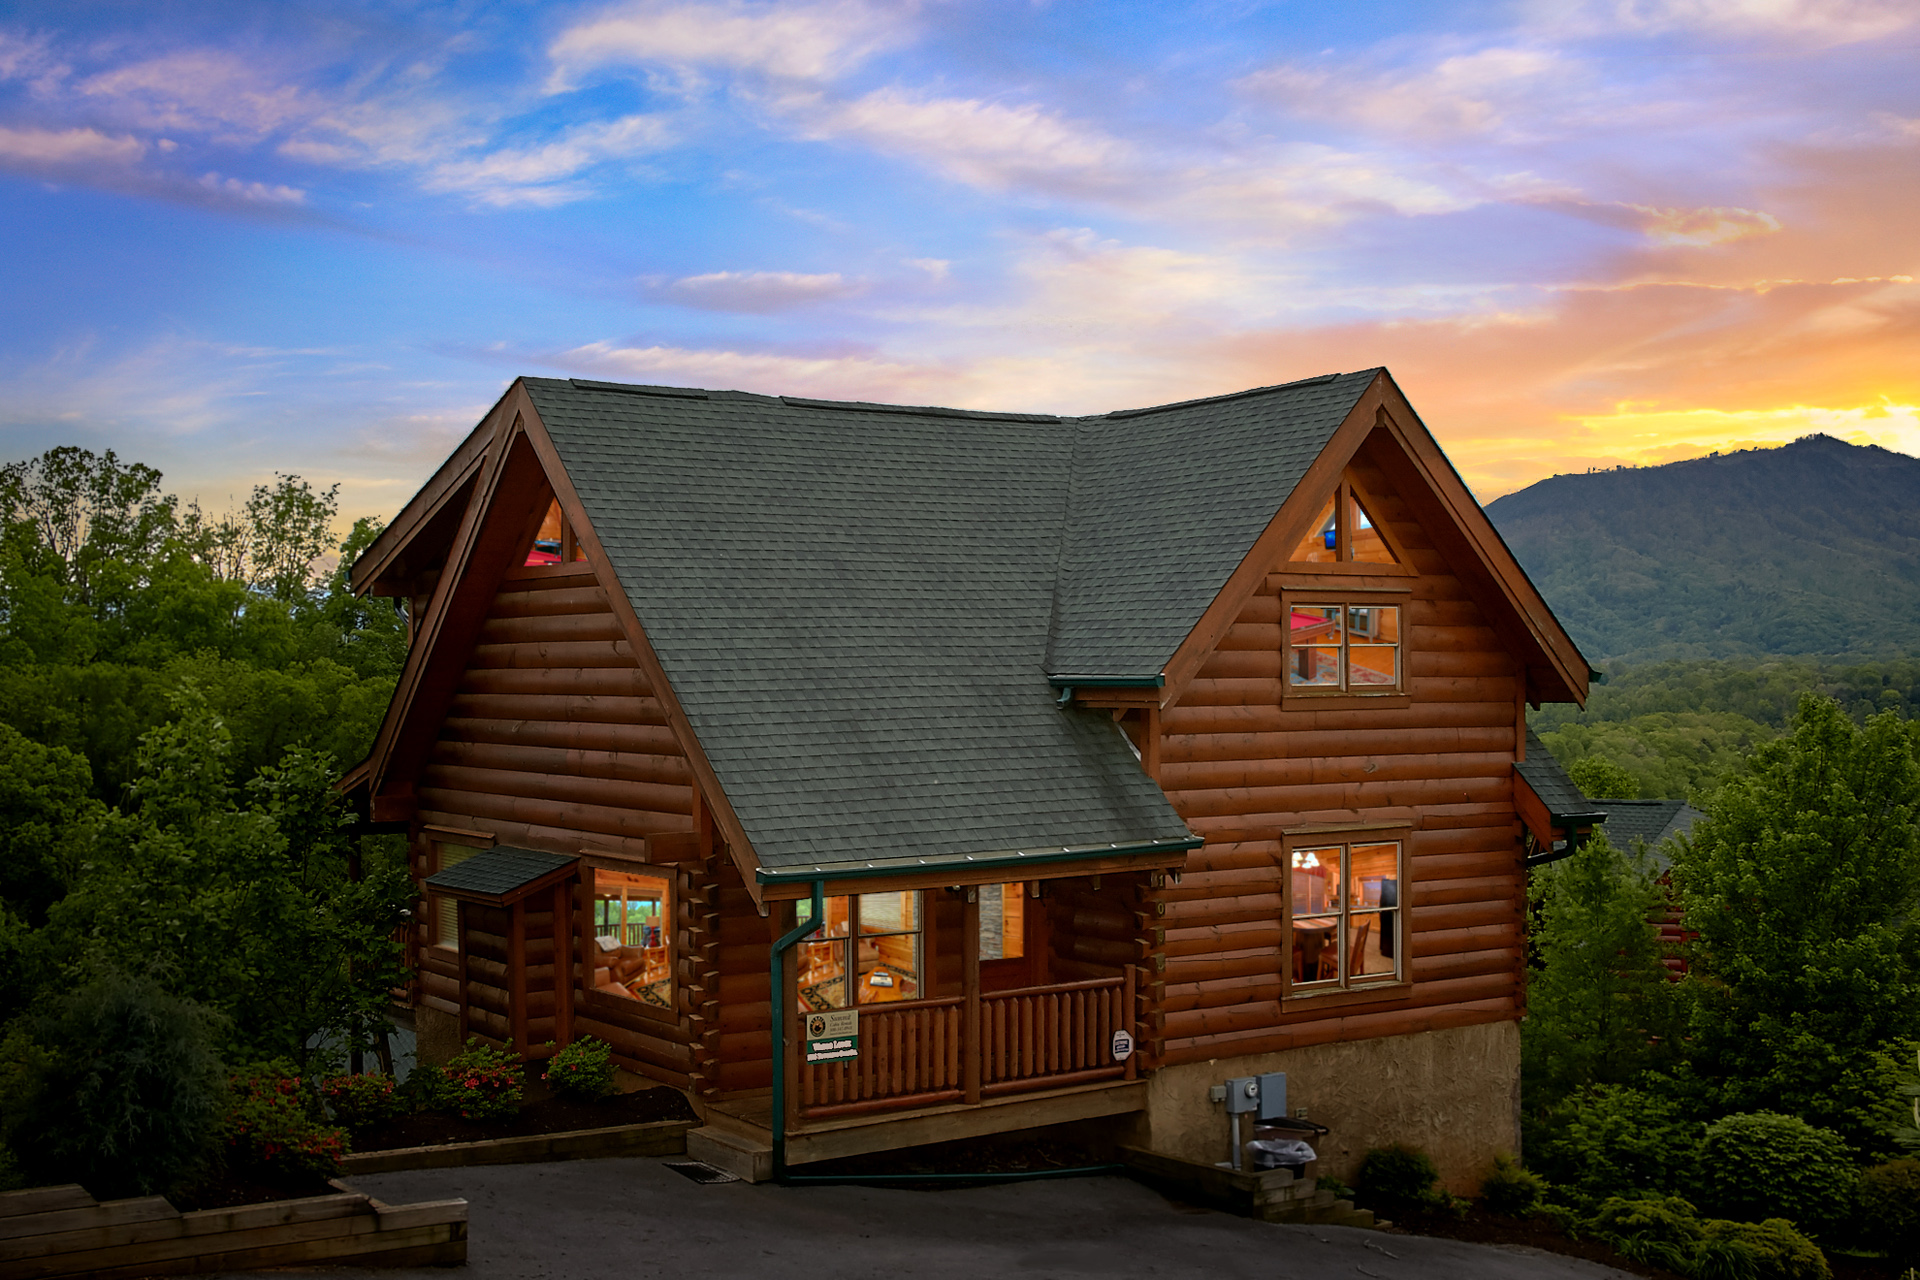 tennessee honeymoon tn sale gatlinburg pet lodging owner for friendly in cabins interior by